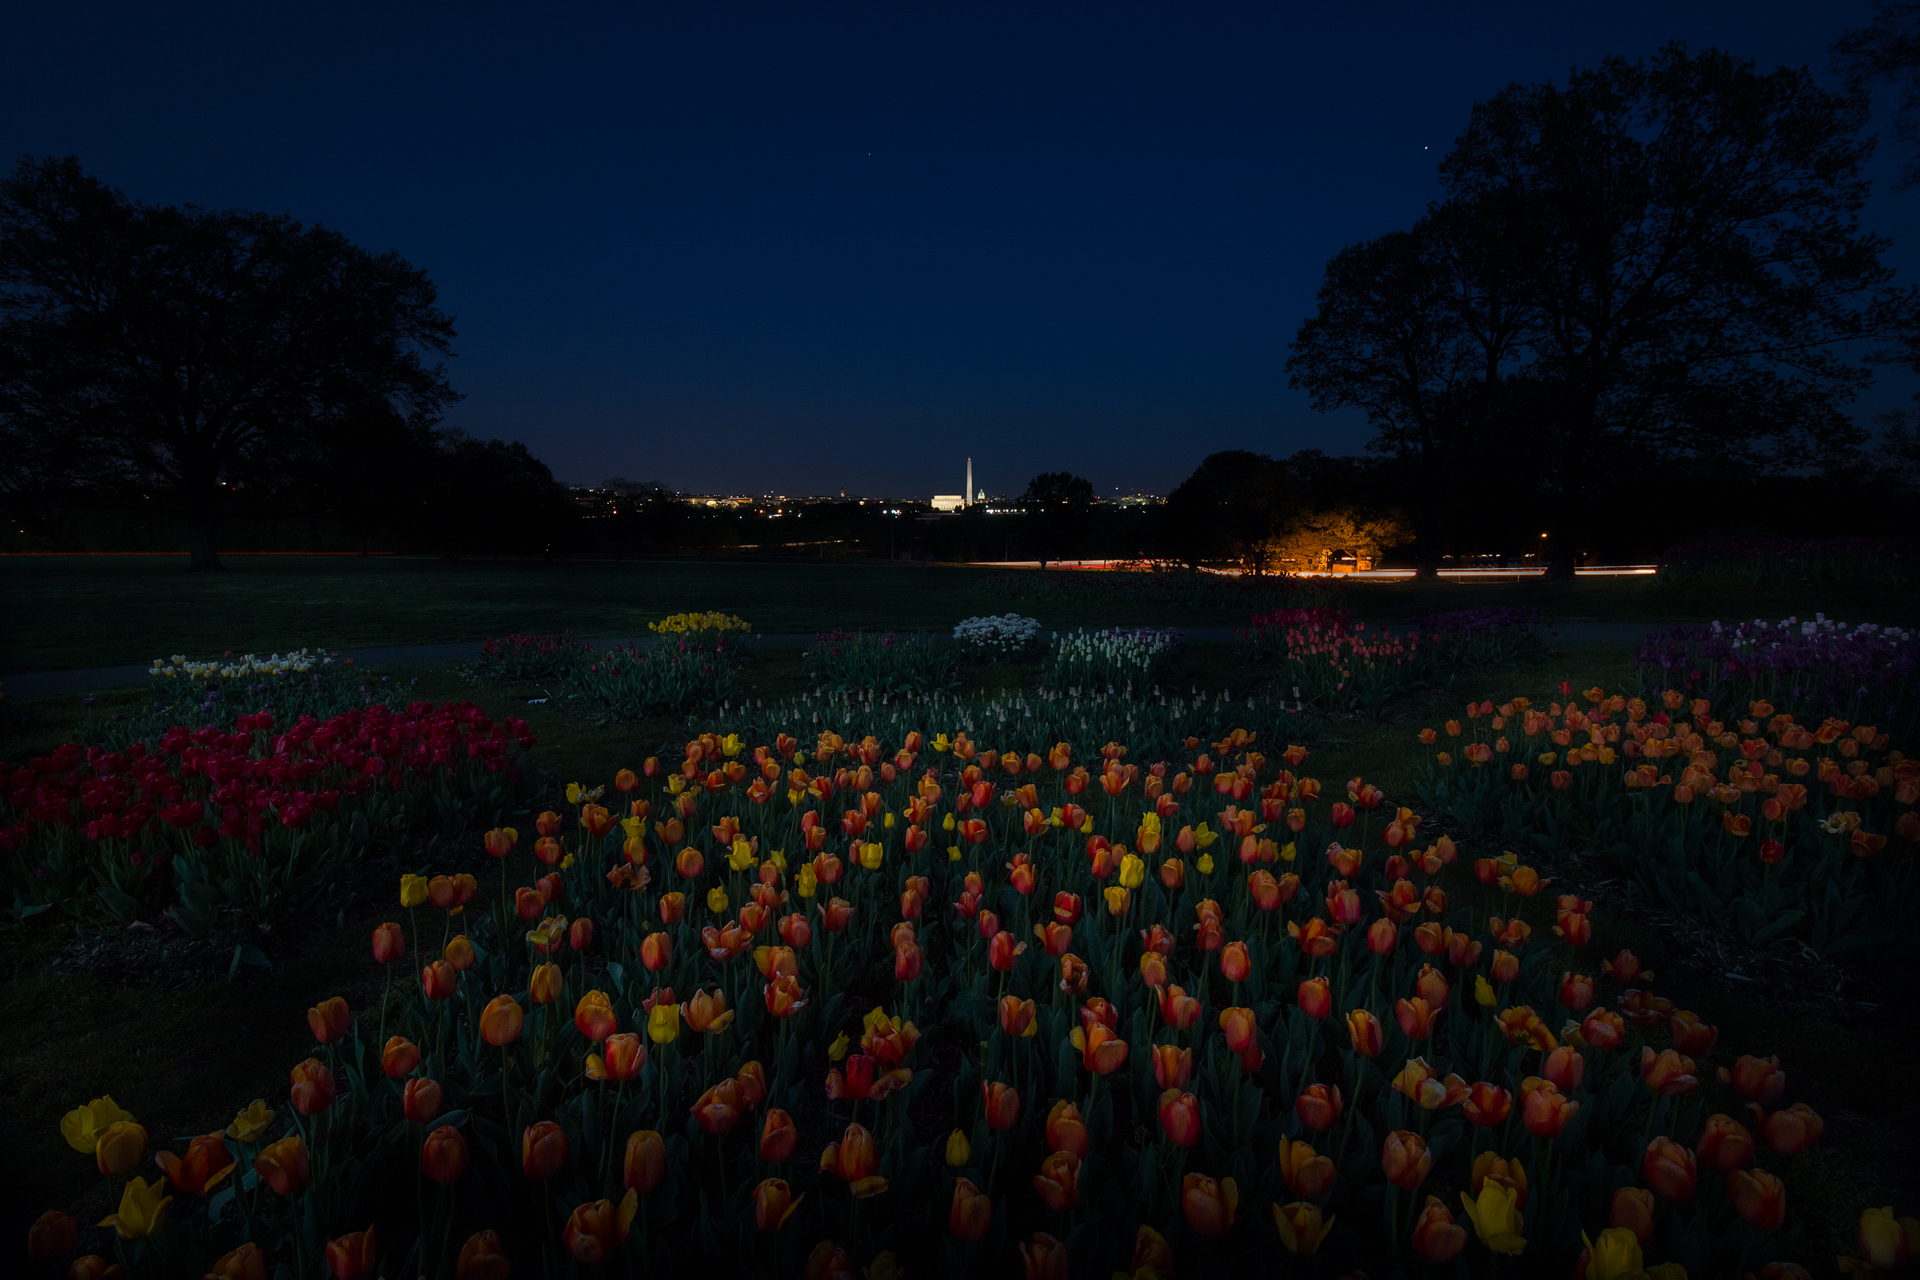 Carillon at Twilight – A view of the monuments while the flowers were in bloom{&amp;nbsp;}(Image: Zack Lewkowicz)<p></p>